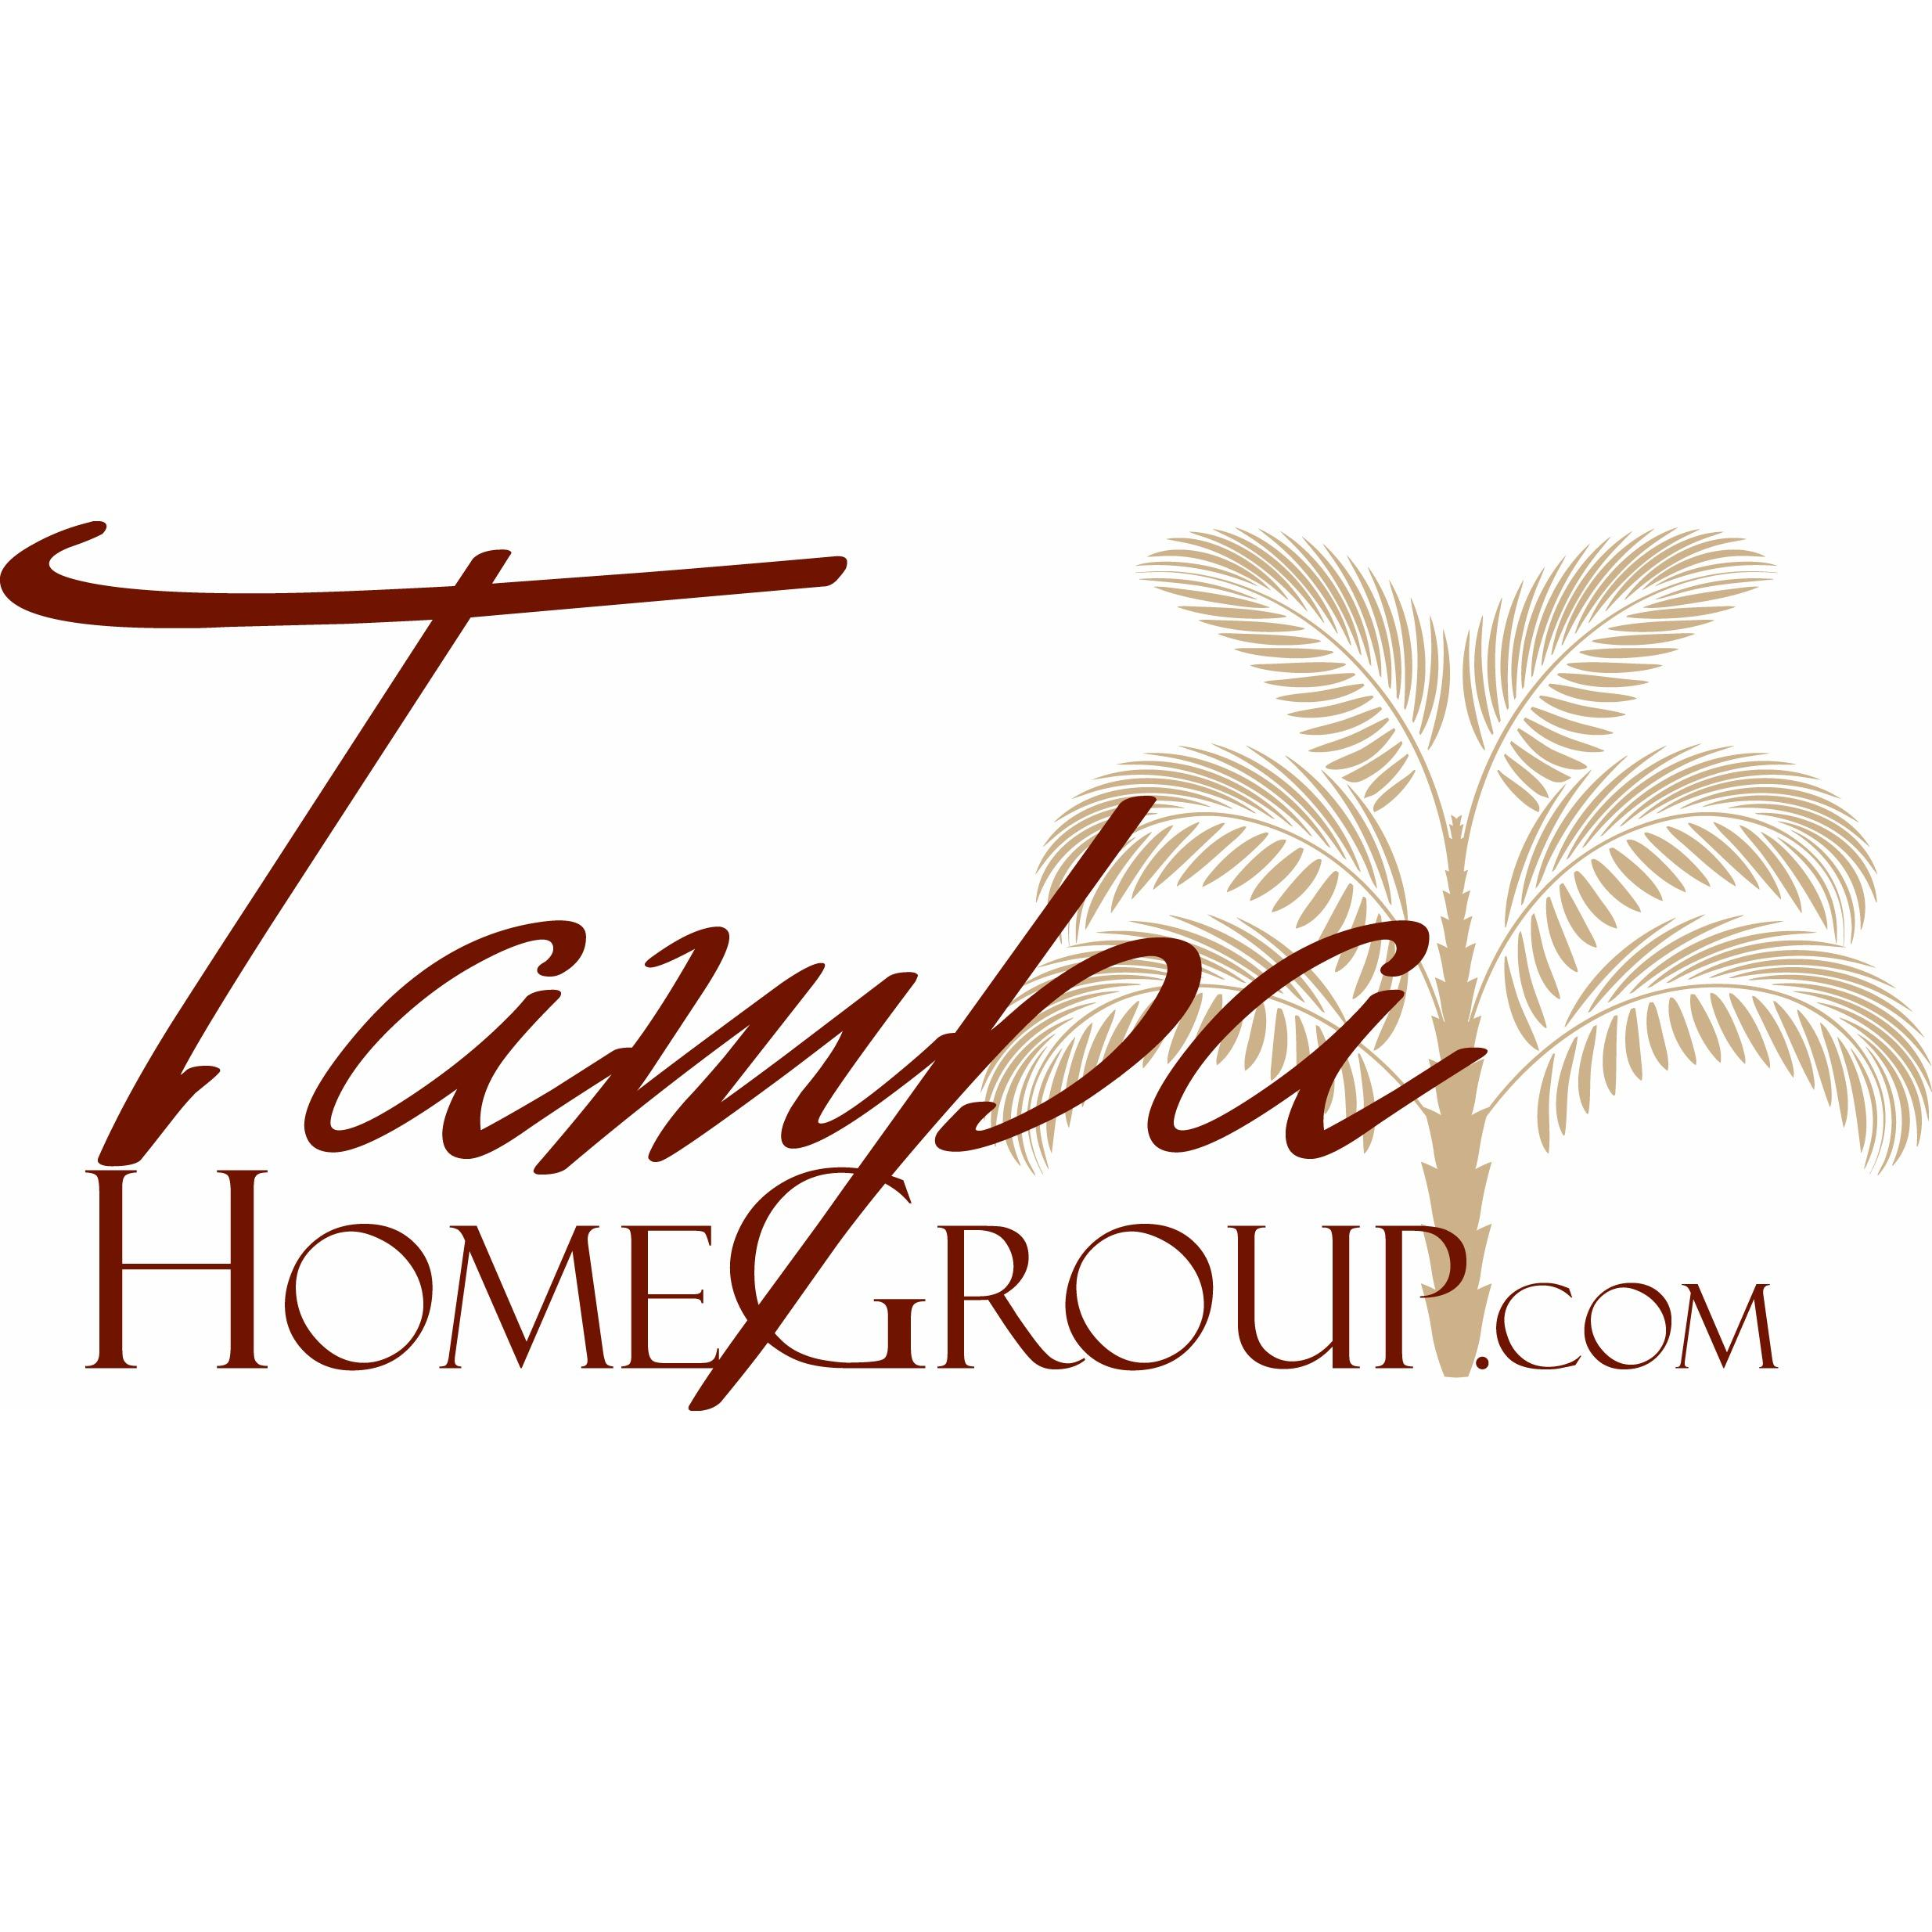 Tampa Home Group